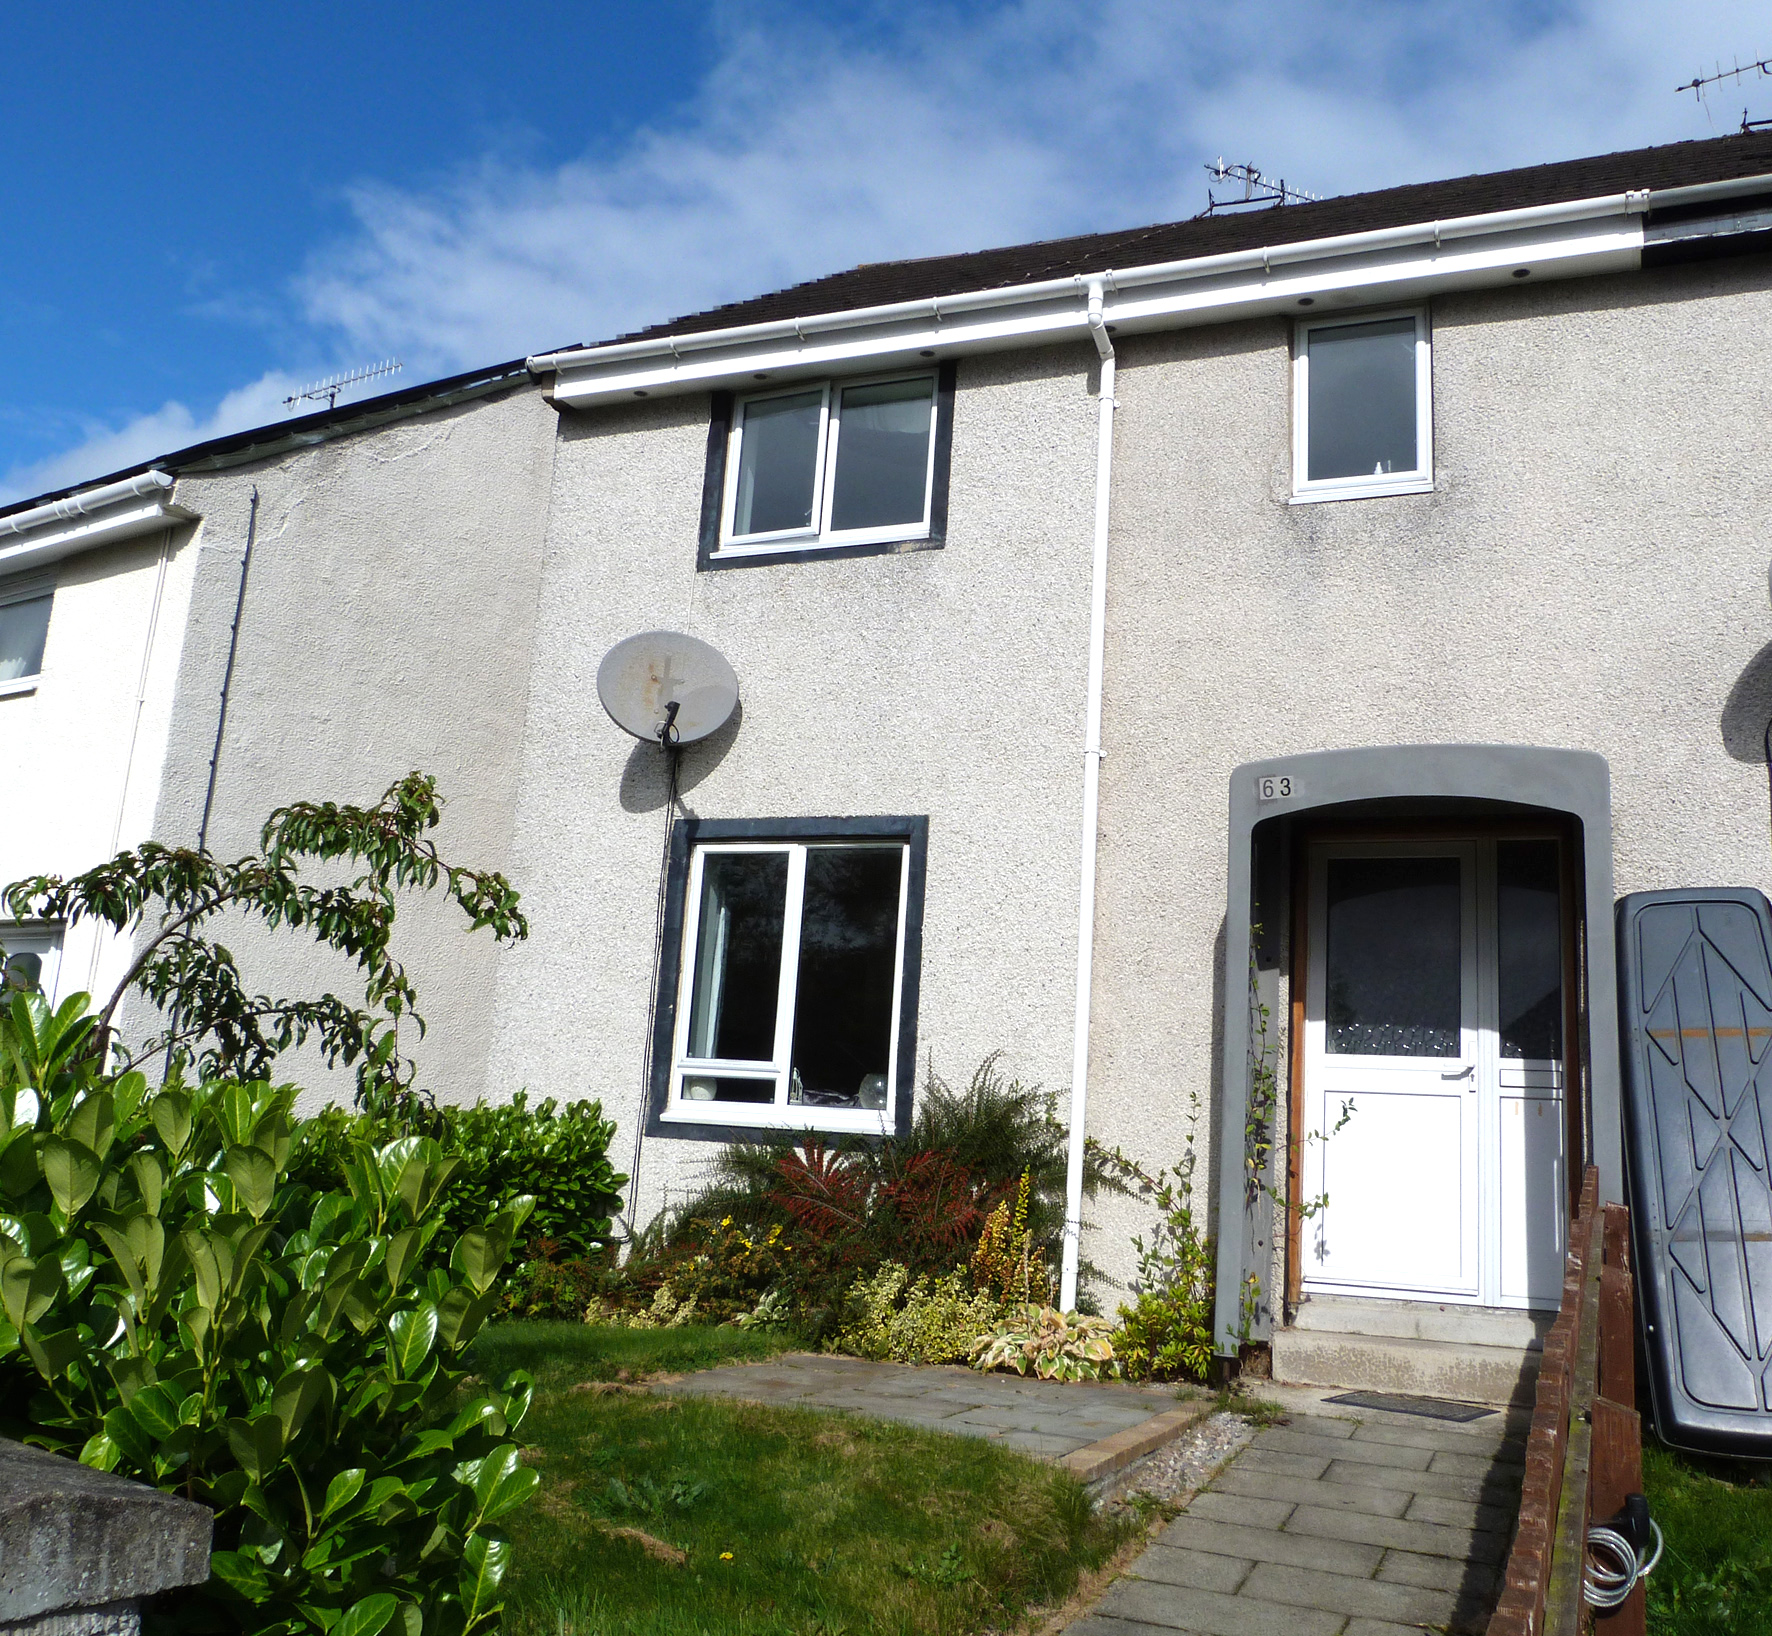 3 Bedrooms Terraced House for sale in Burnside Avenue, Aviemore, PH22 1SE